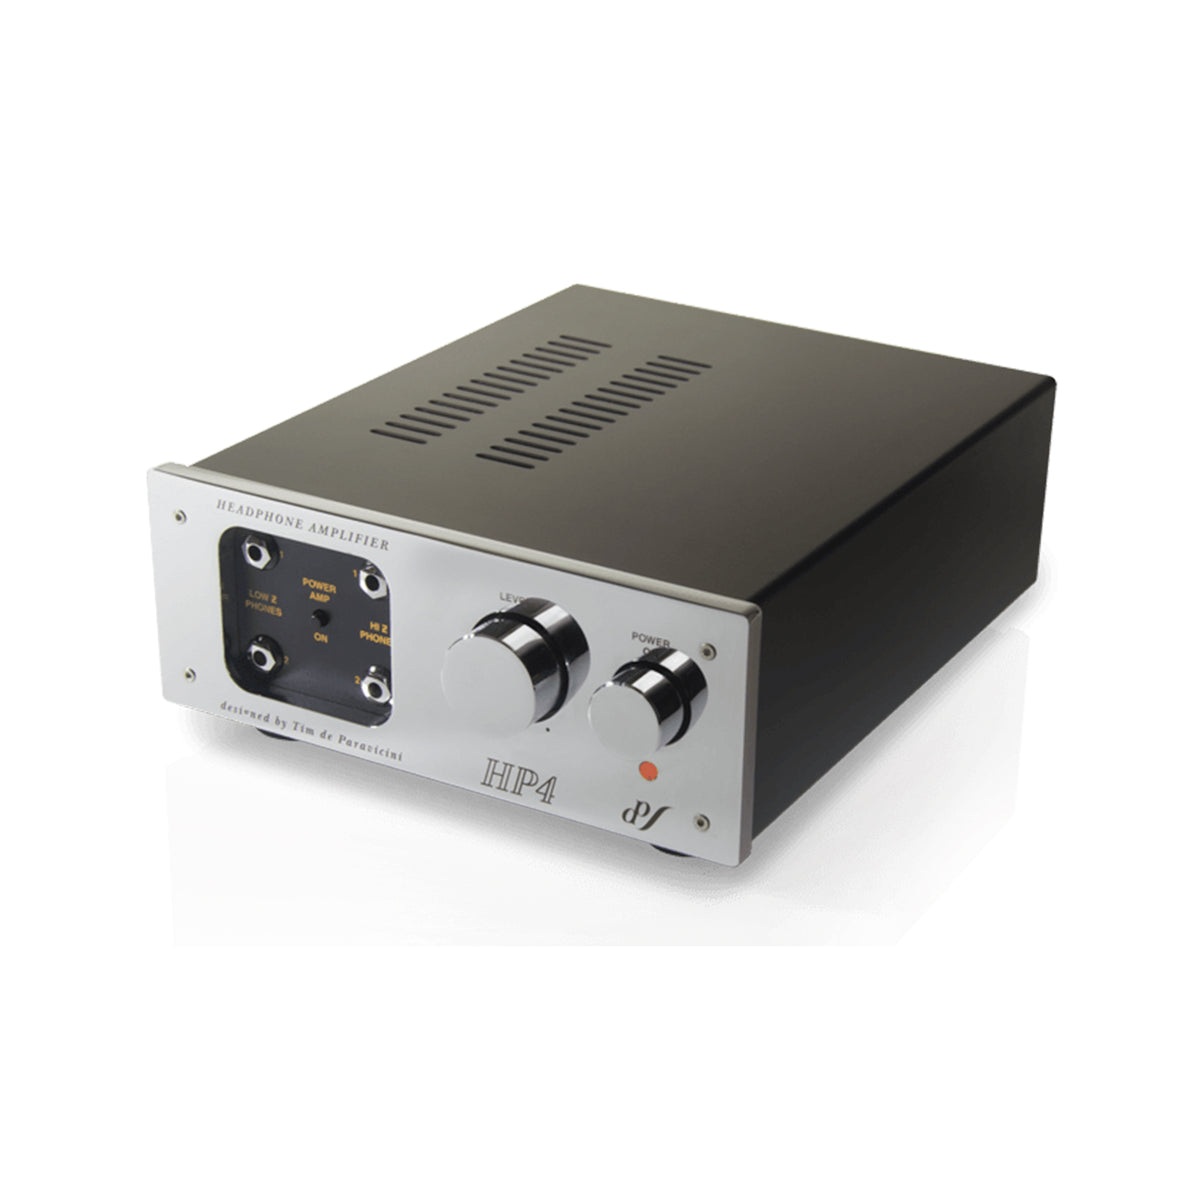 Ear Yoshino HP4 HEADPHONE AMP